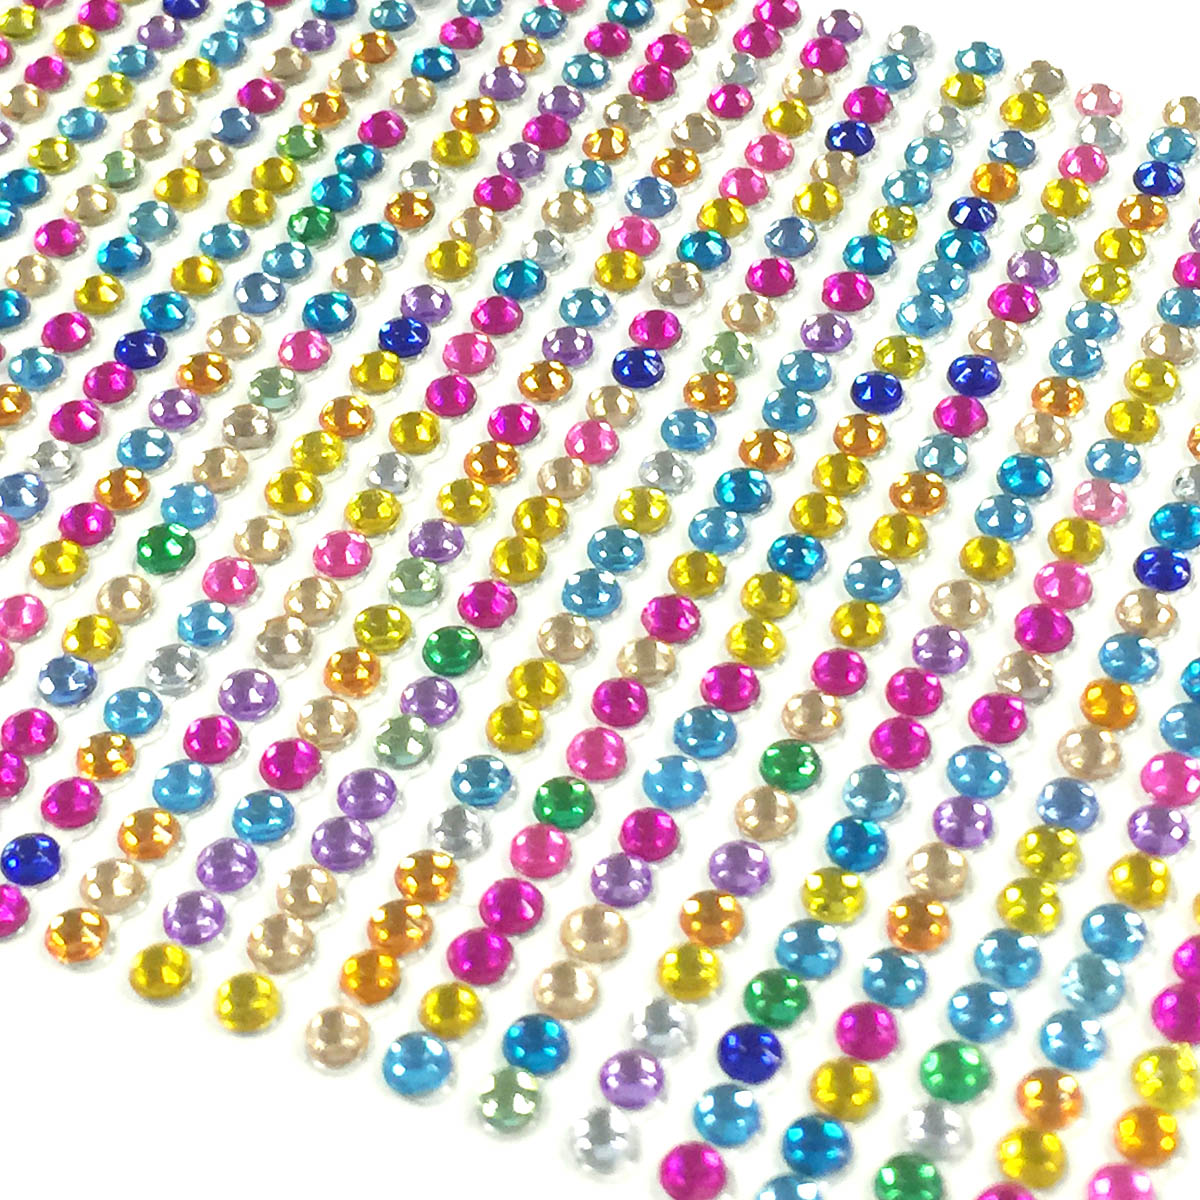 Wrapables 750-Piece Adhesive Rhinestone Crystal Diamond Sticker, 3mm, Multi-Color